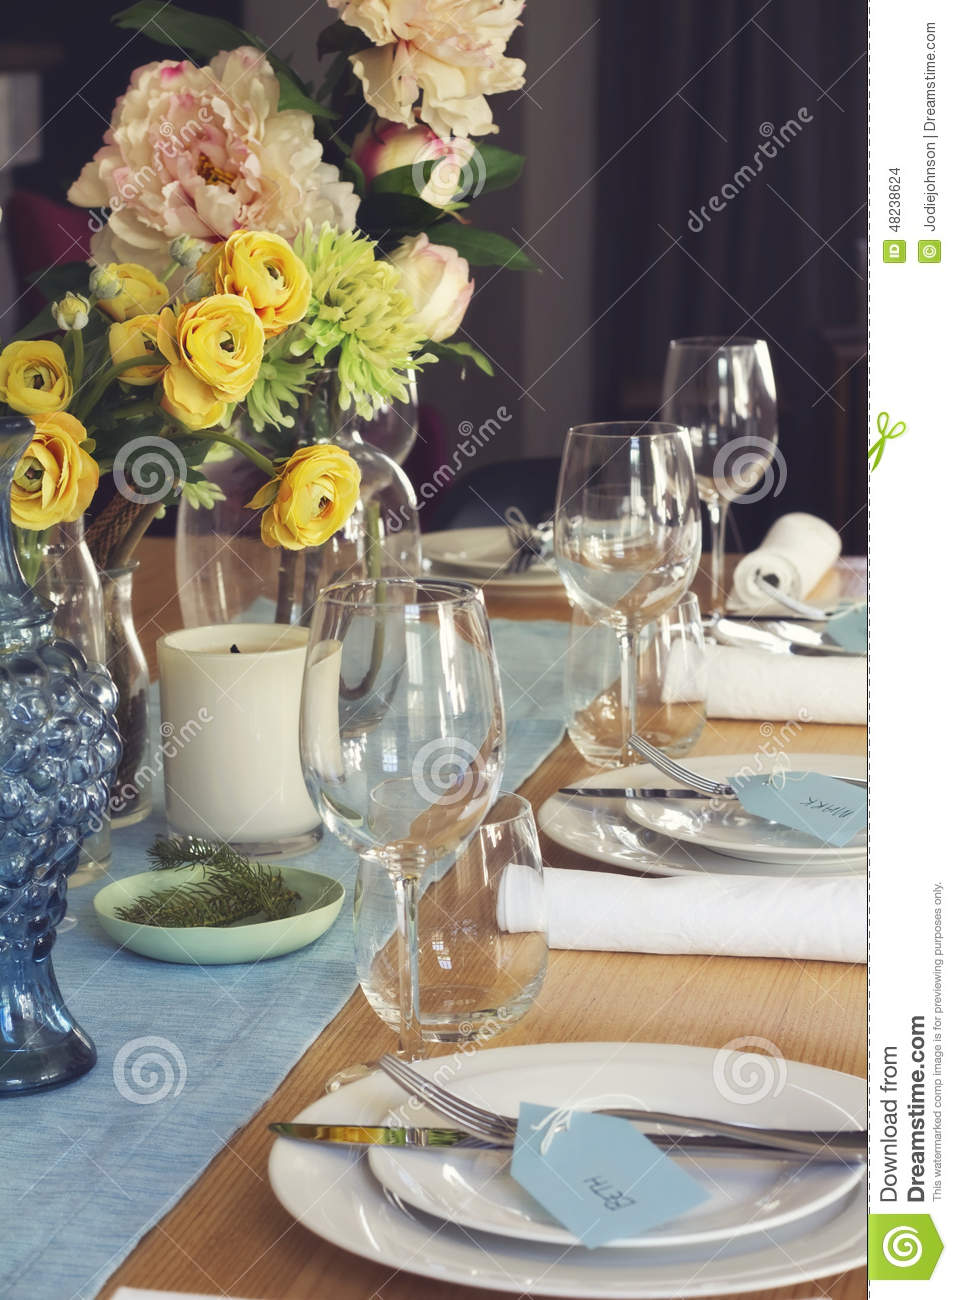 Formal table setting for lunch or dinner with flowers centrepiec & Formal Table Setting For Lunch Or Dinner With Flowers Centrepiec ...